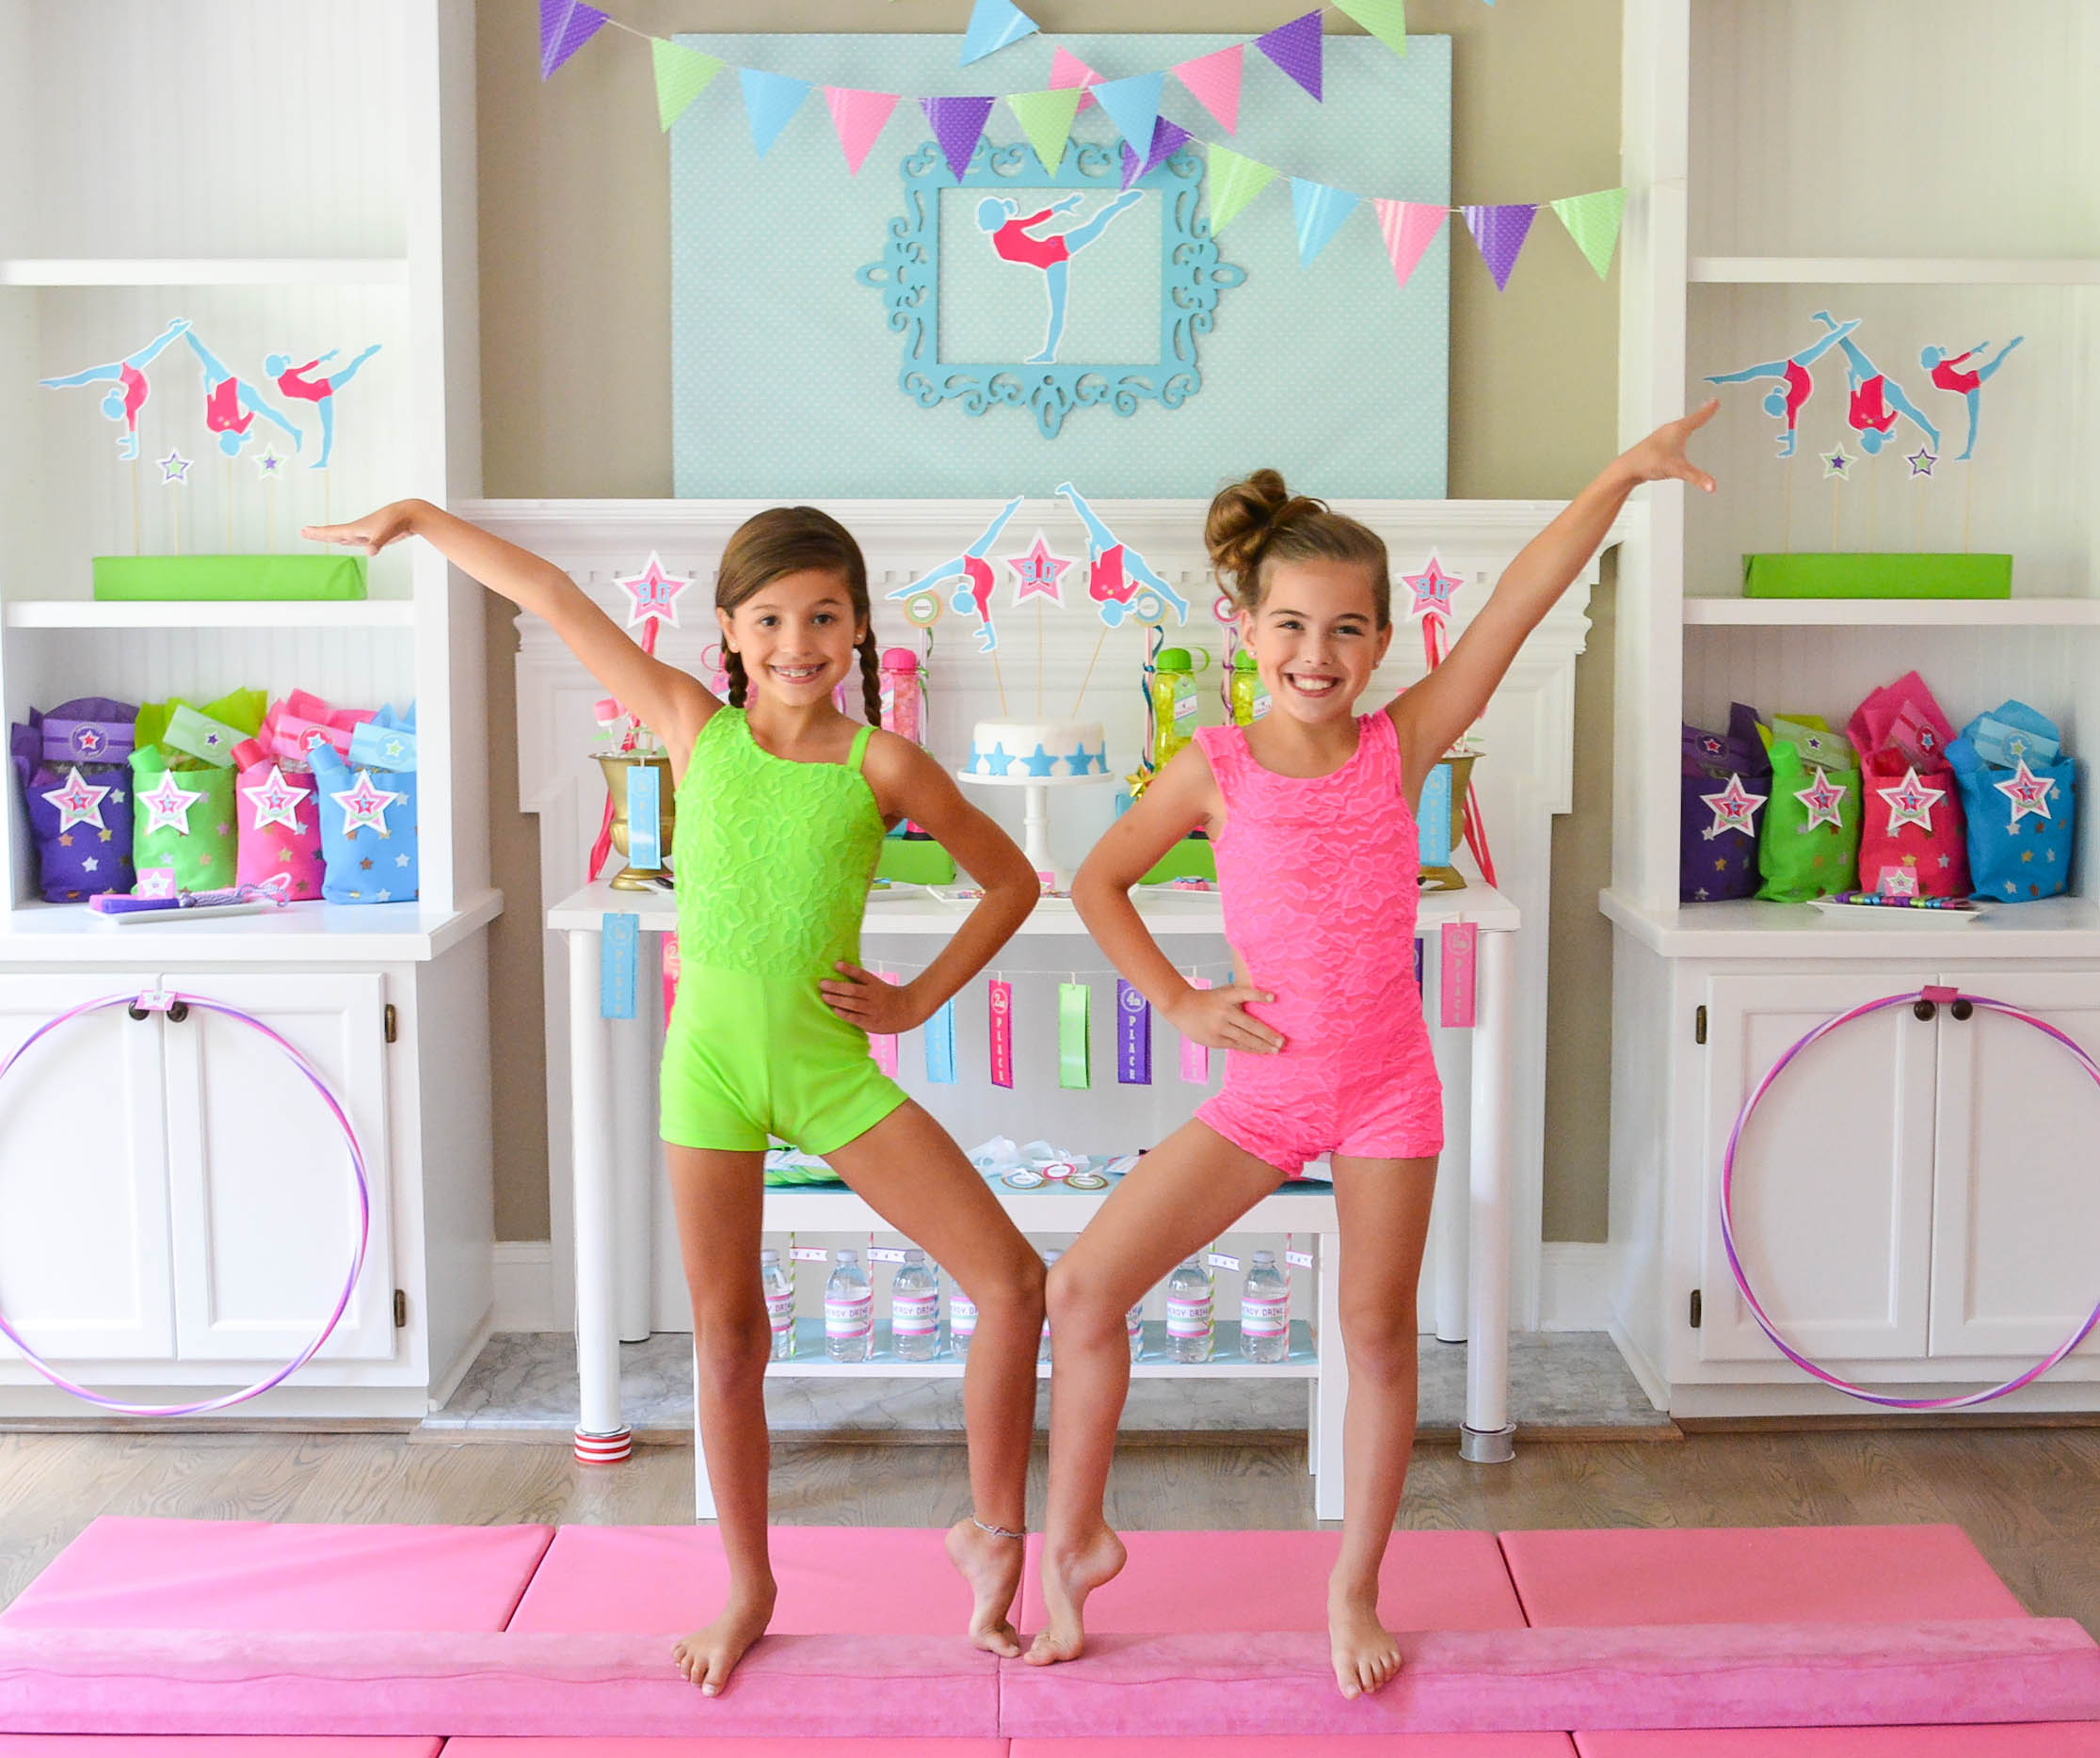 Gifts all home ideas sweet sixteen gift ideas for best friends - Gymnastics Birthday